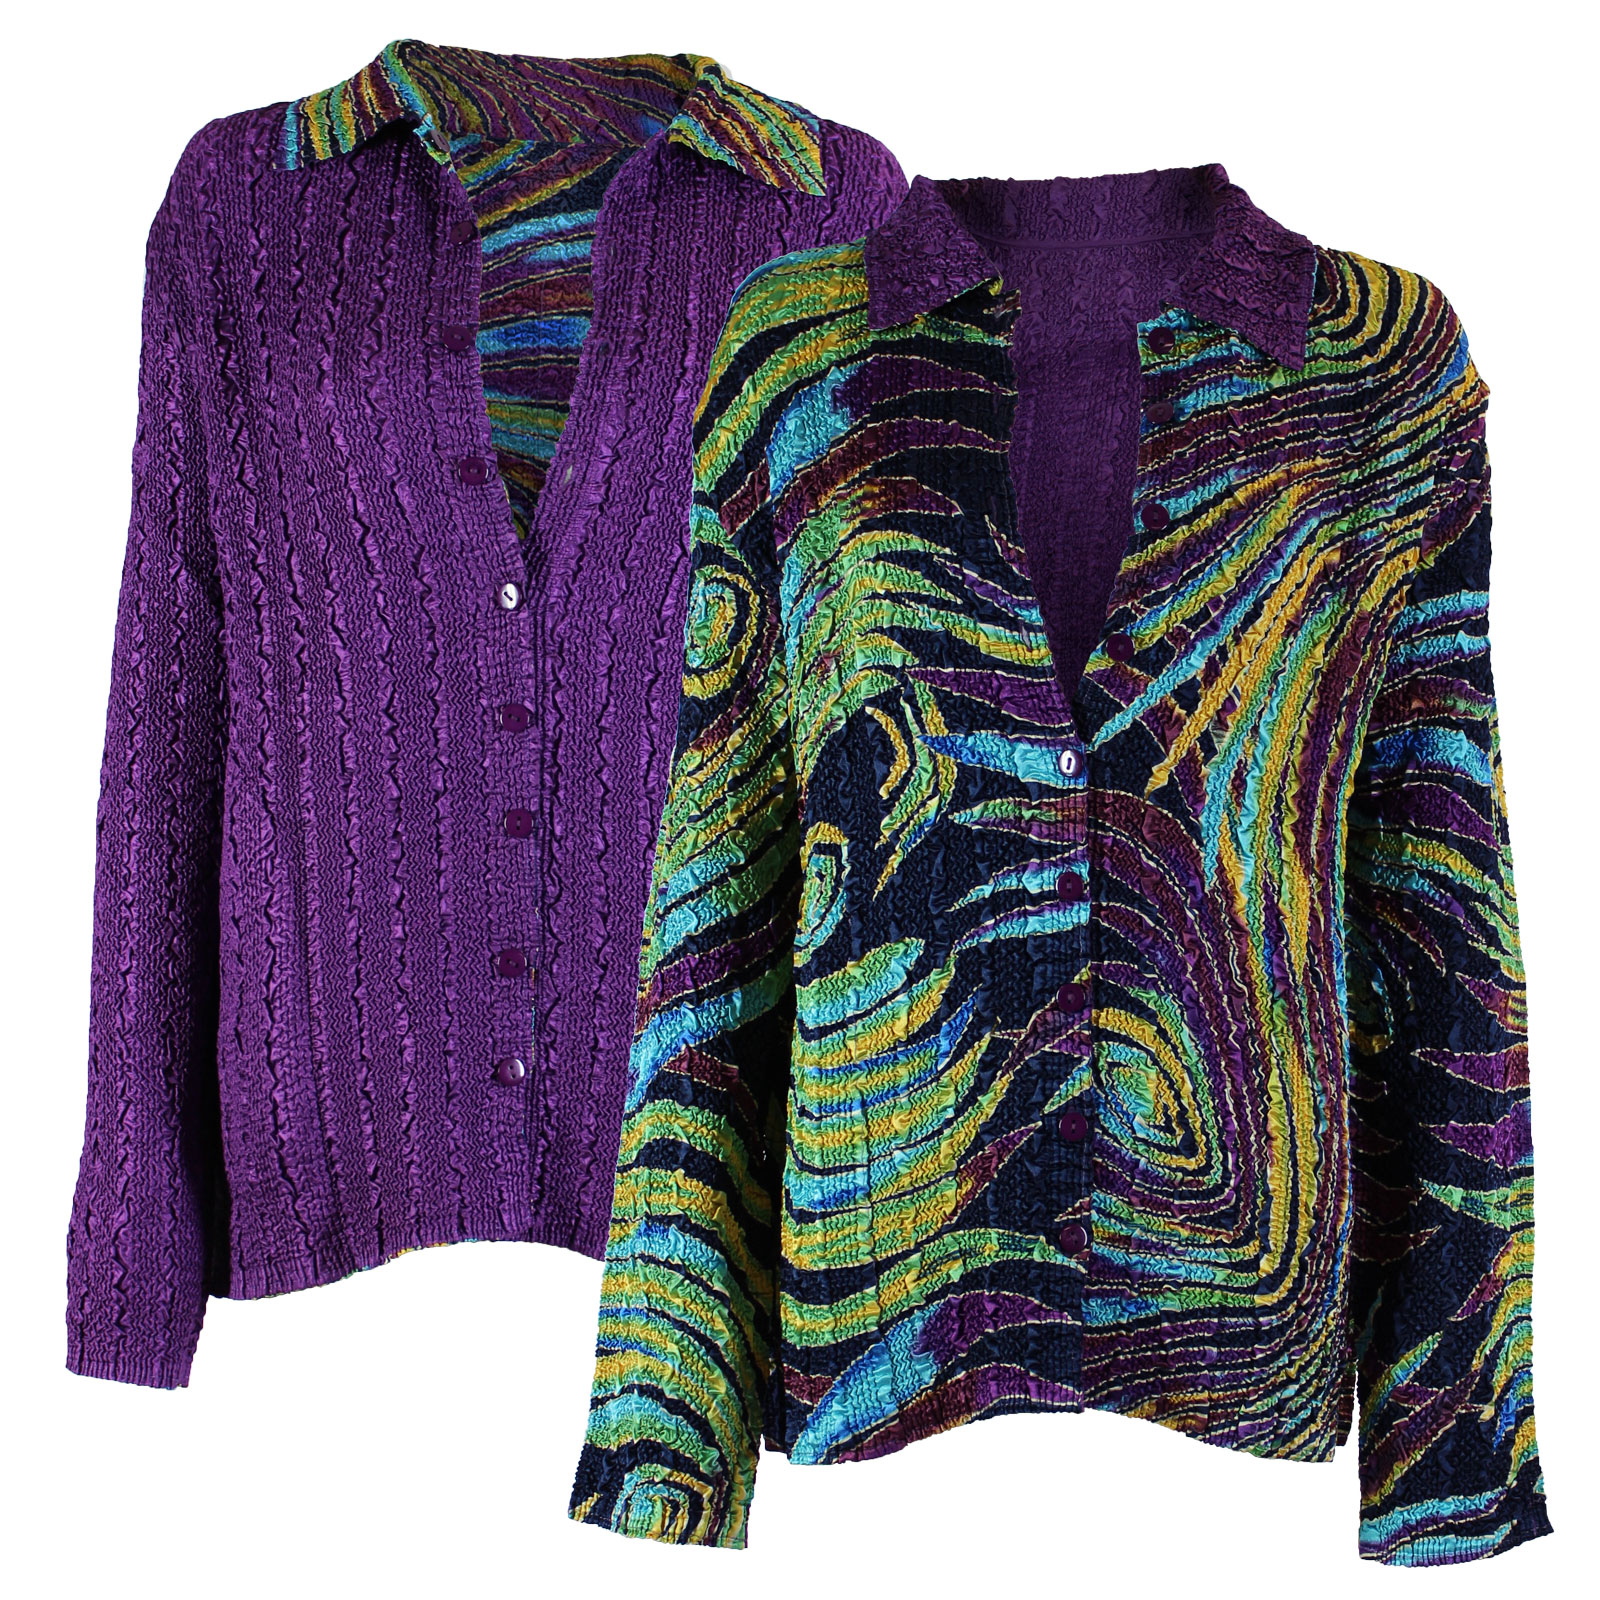 Wholesale Magic Crush - Reversible Jackets Psychedelic Swirl reverses to Solid Purple - S-M